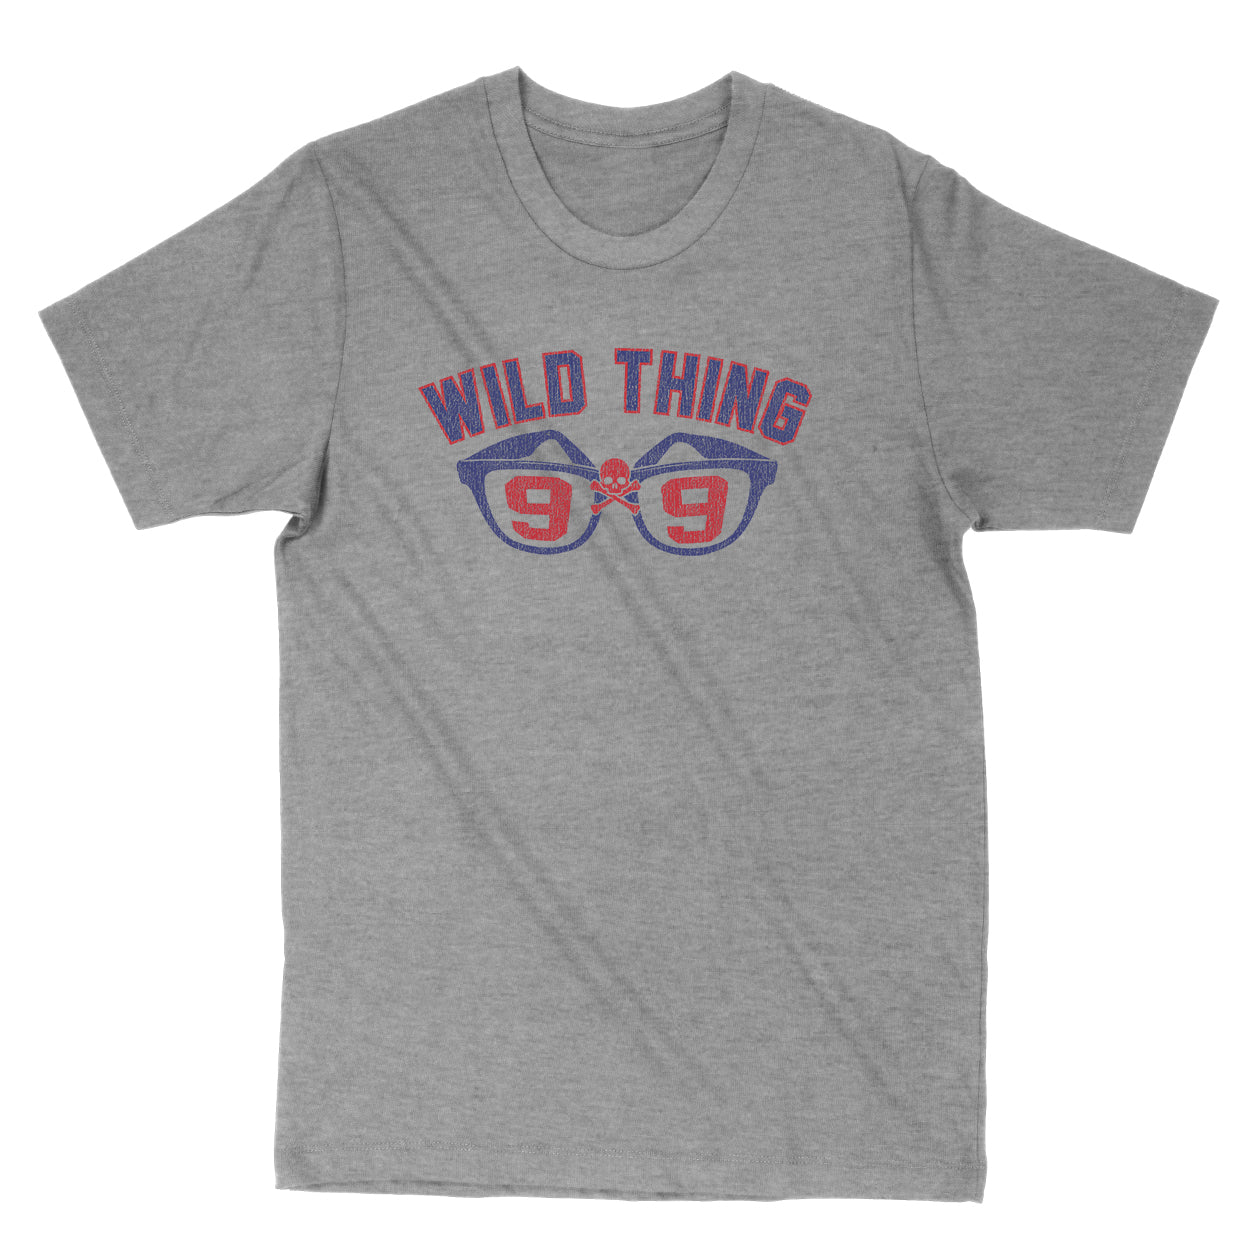 Wild Thing 99 Men's T-Shirt - Clothe Ohio - Soft Ohio Shirts